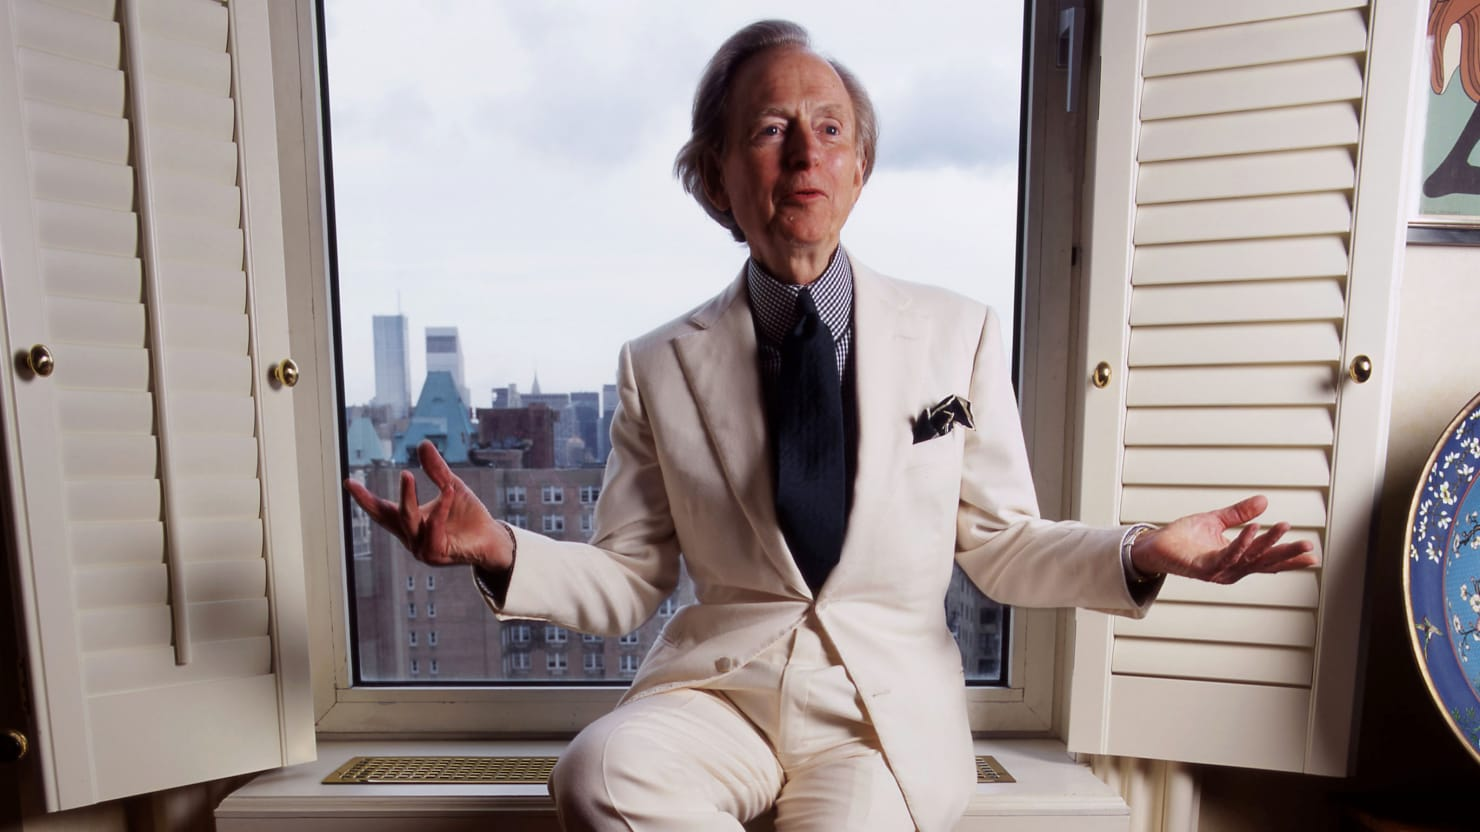 Tom Wolfe S Iconic White Suit